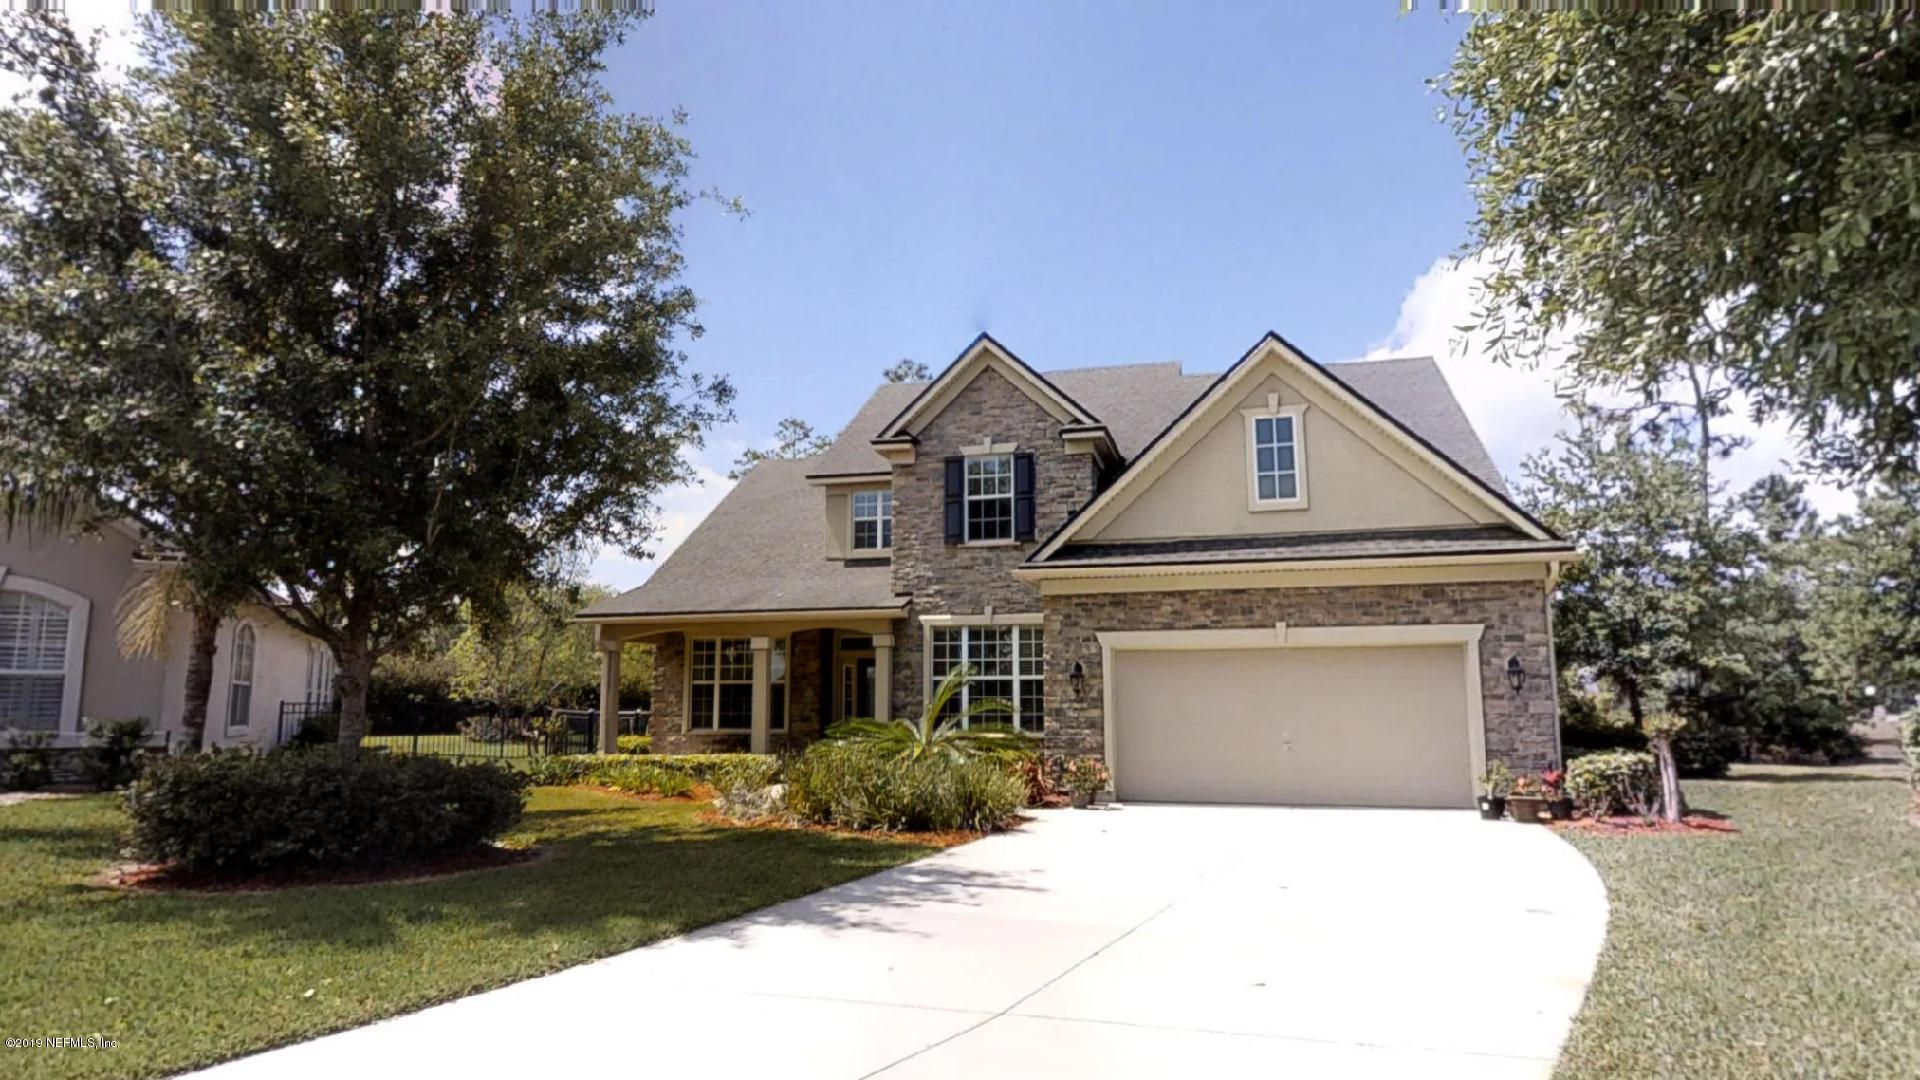 783 EAGLE COVE, FLEMING ISLAND, FLORIDA 32003, 5 Bedrooms Bedrooms, ,2 BathroomsBathrooms,Residential - single family,For sale,EAGLE COVE,989415